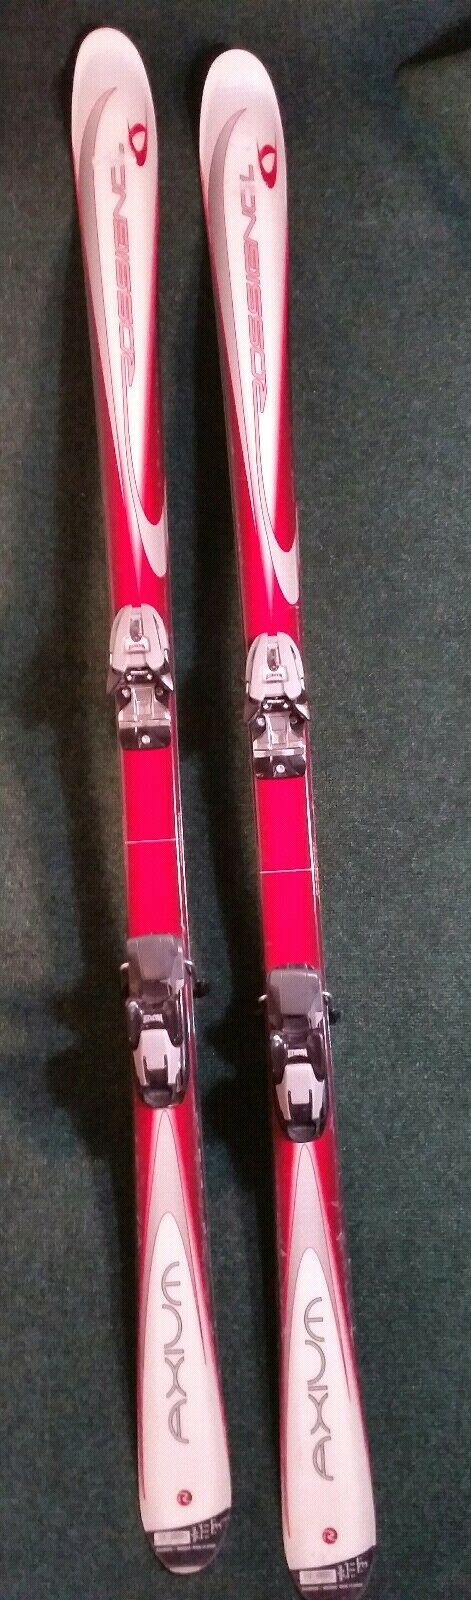 Rossignol Axium Skis with  Marker M3.2 Bindings 177 cm  free and fast delivery available